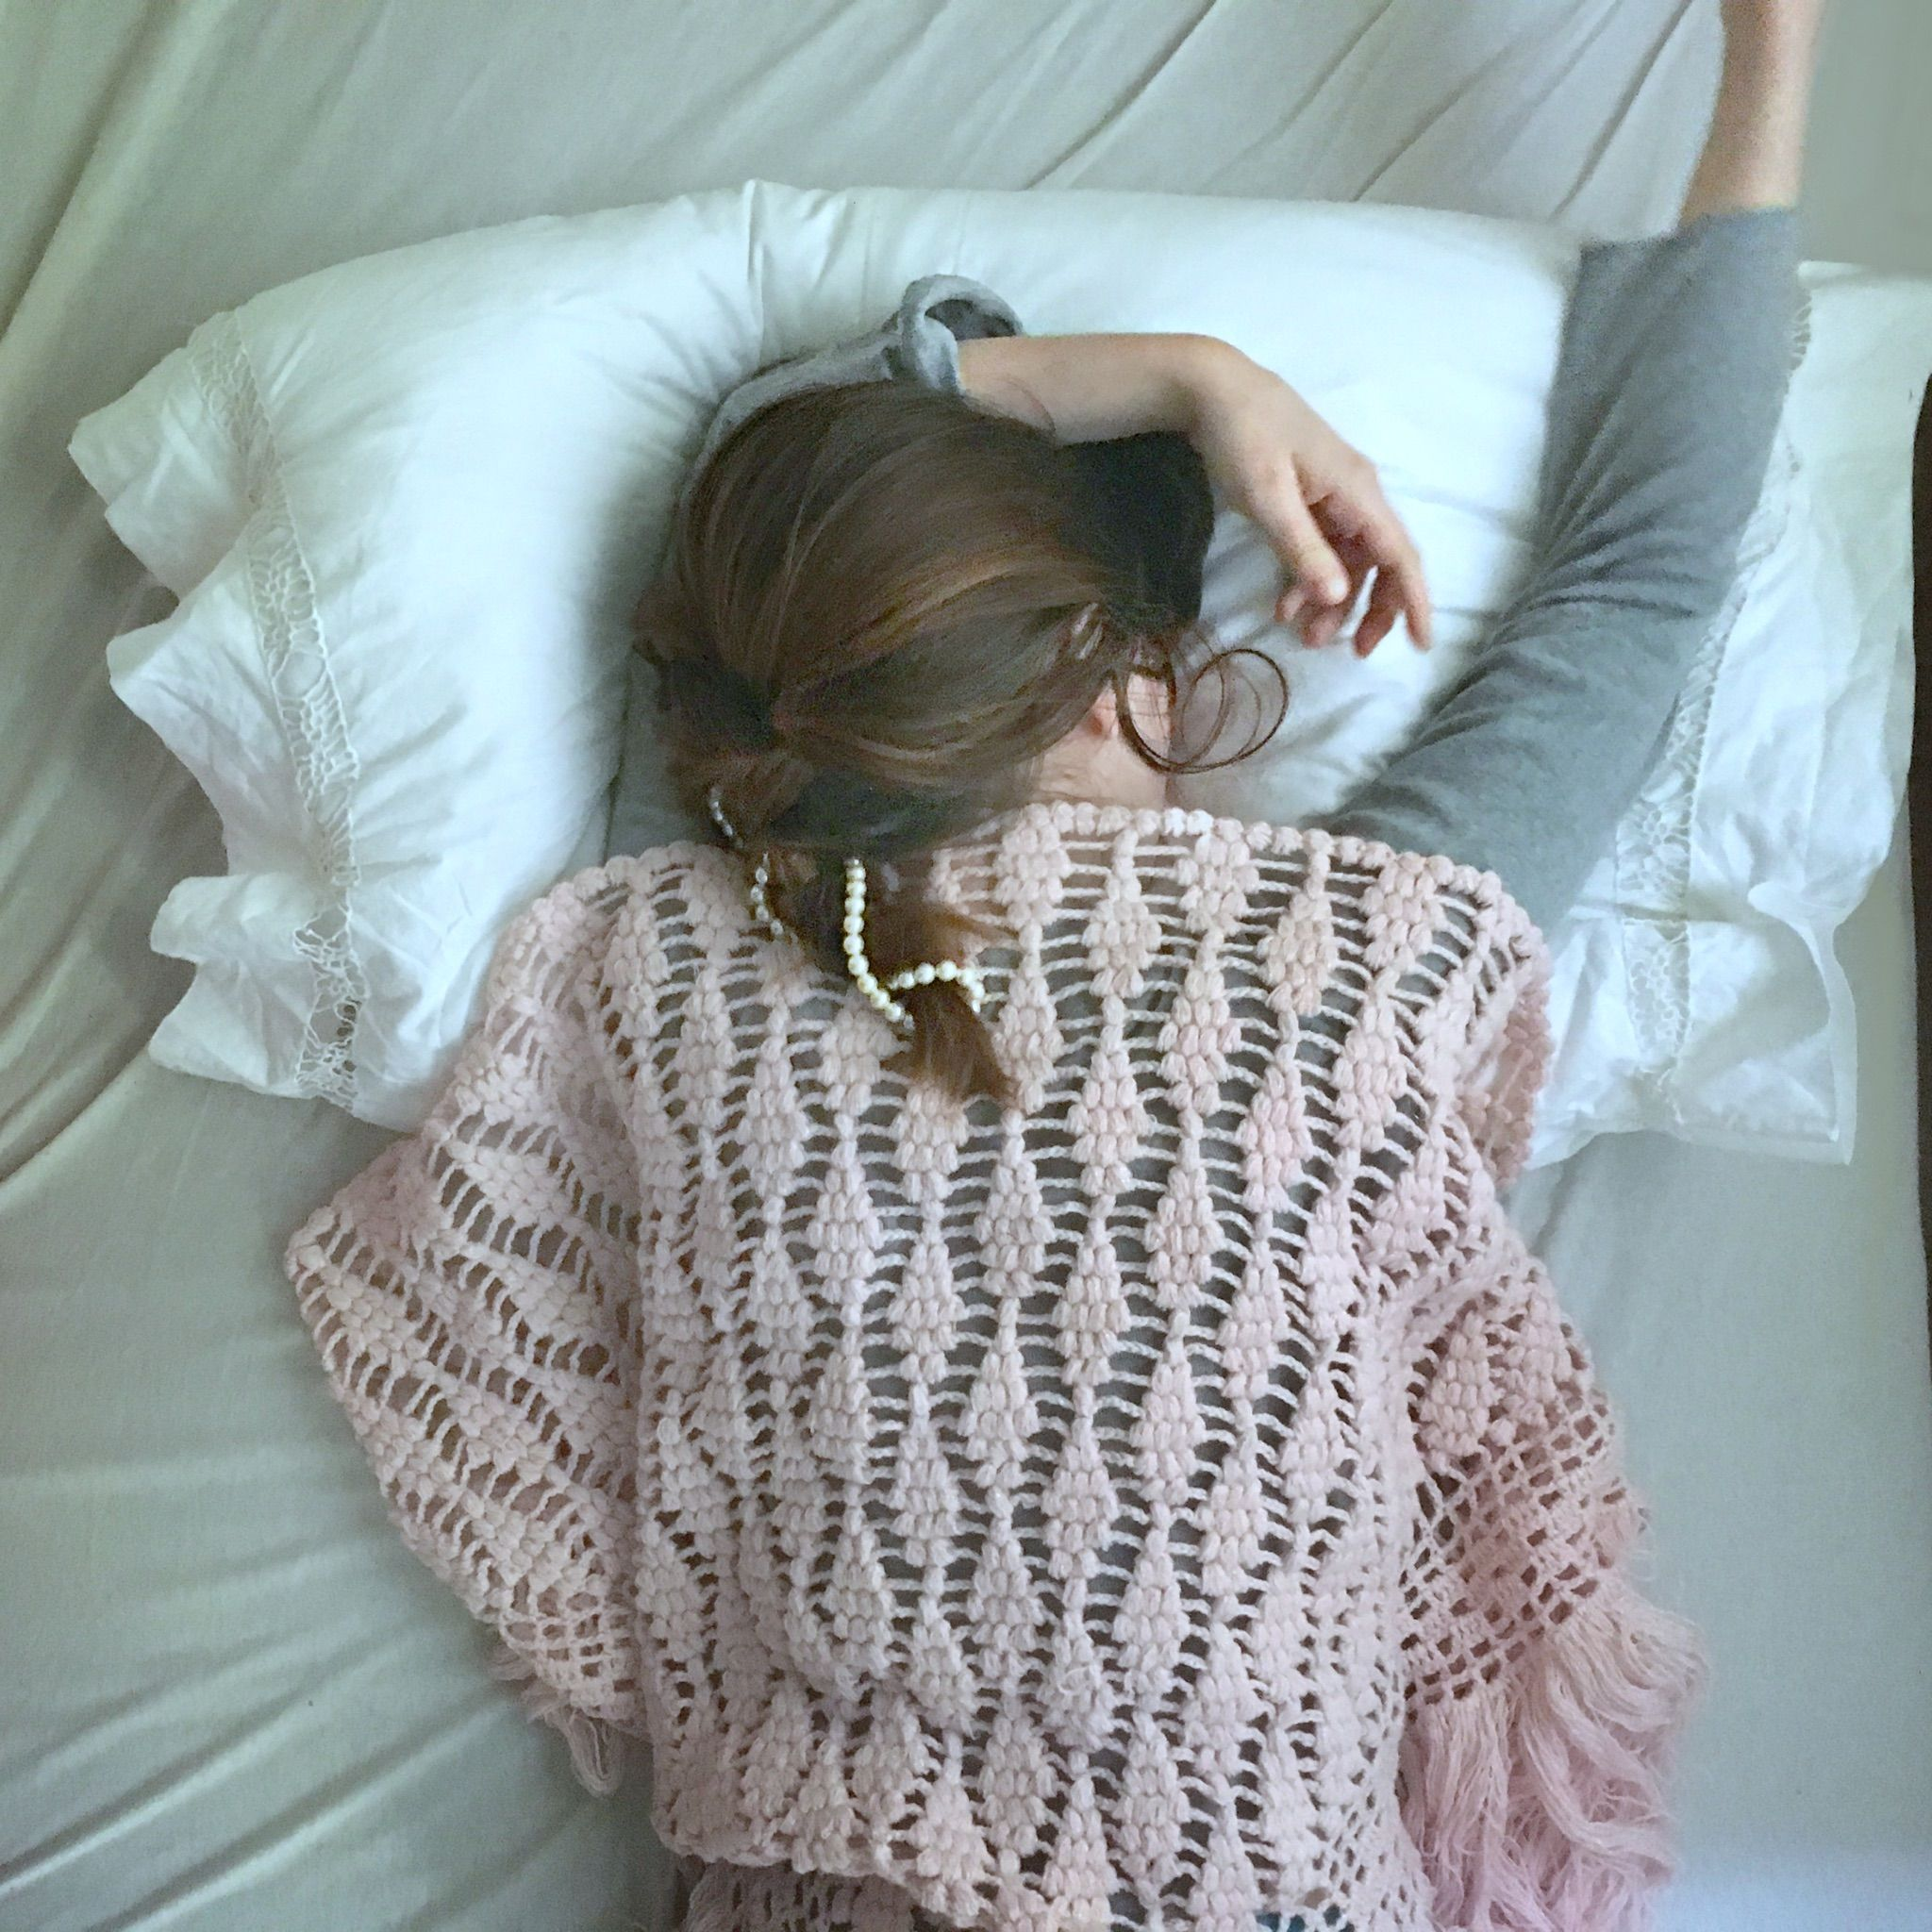 Pink shawl & pearls in bed.